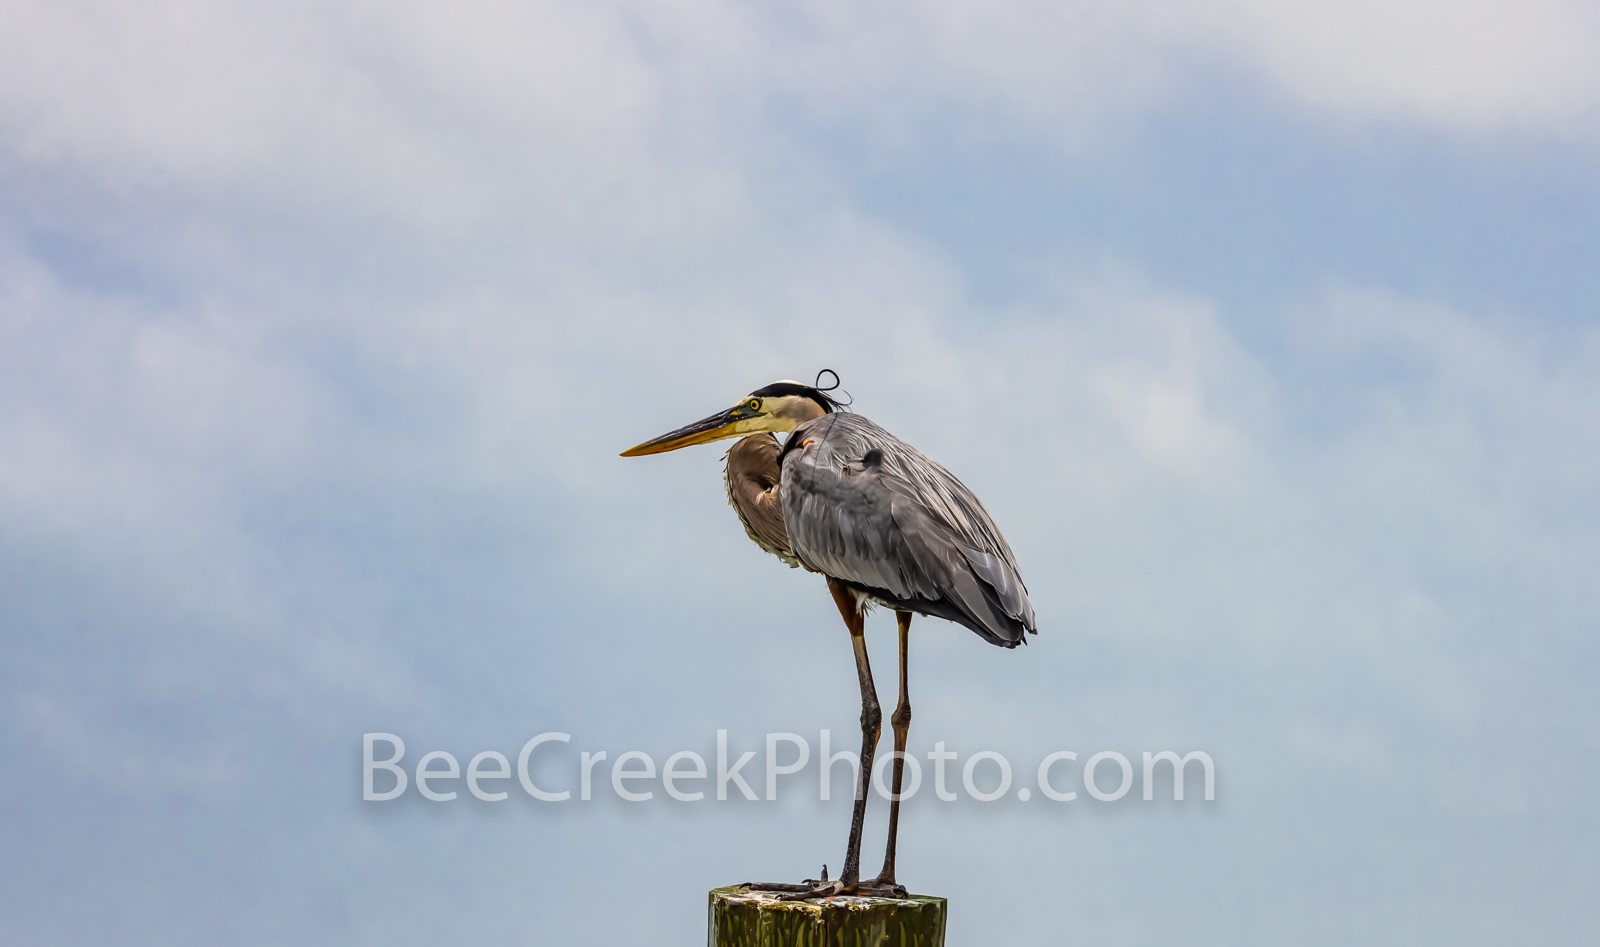 great blue heron, heron, post, coastal bird, blue grey, plumage, majestic bird, wading, shallow waters, shoreline, surveying, beak, spear, fishing, birds, stoic, stately heron, water bird,, photo